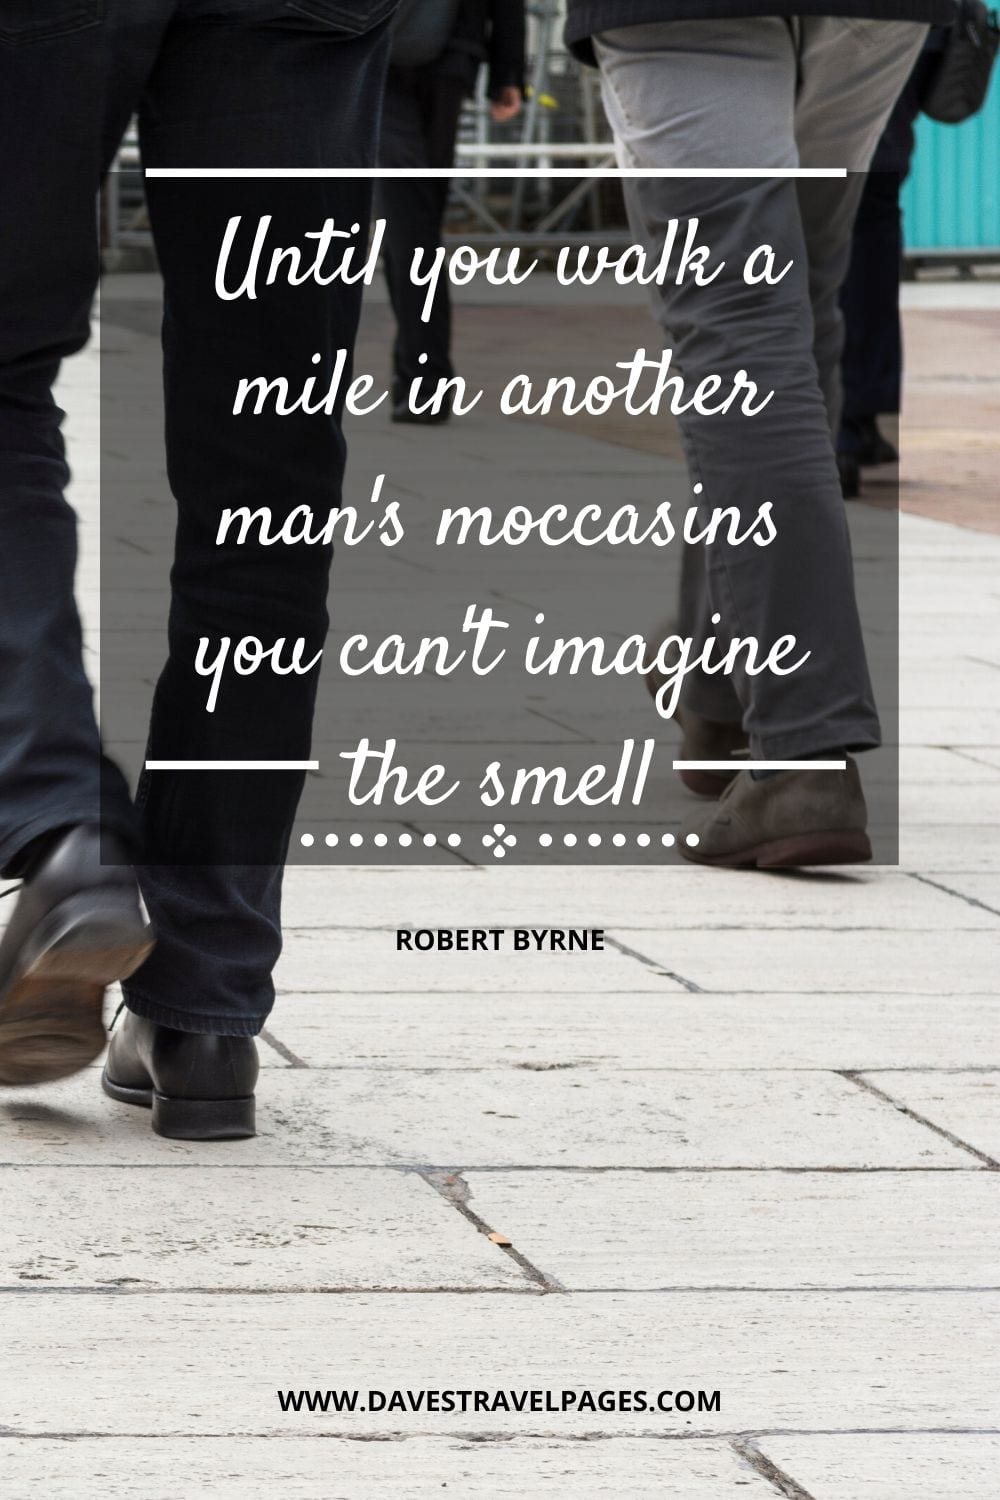 Funny Walking Quotes: Until you walk a mile in another man's moccasins you can't imagine the smell - Robert Byrne